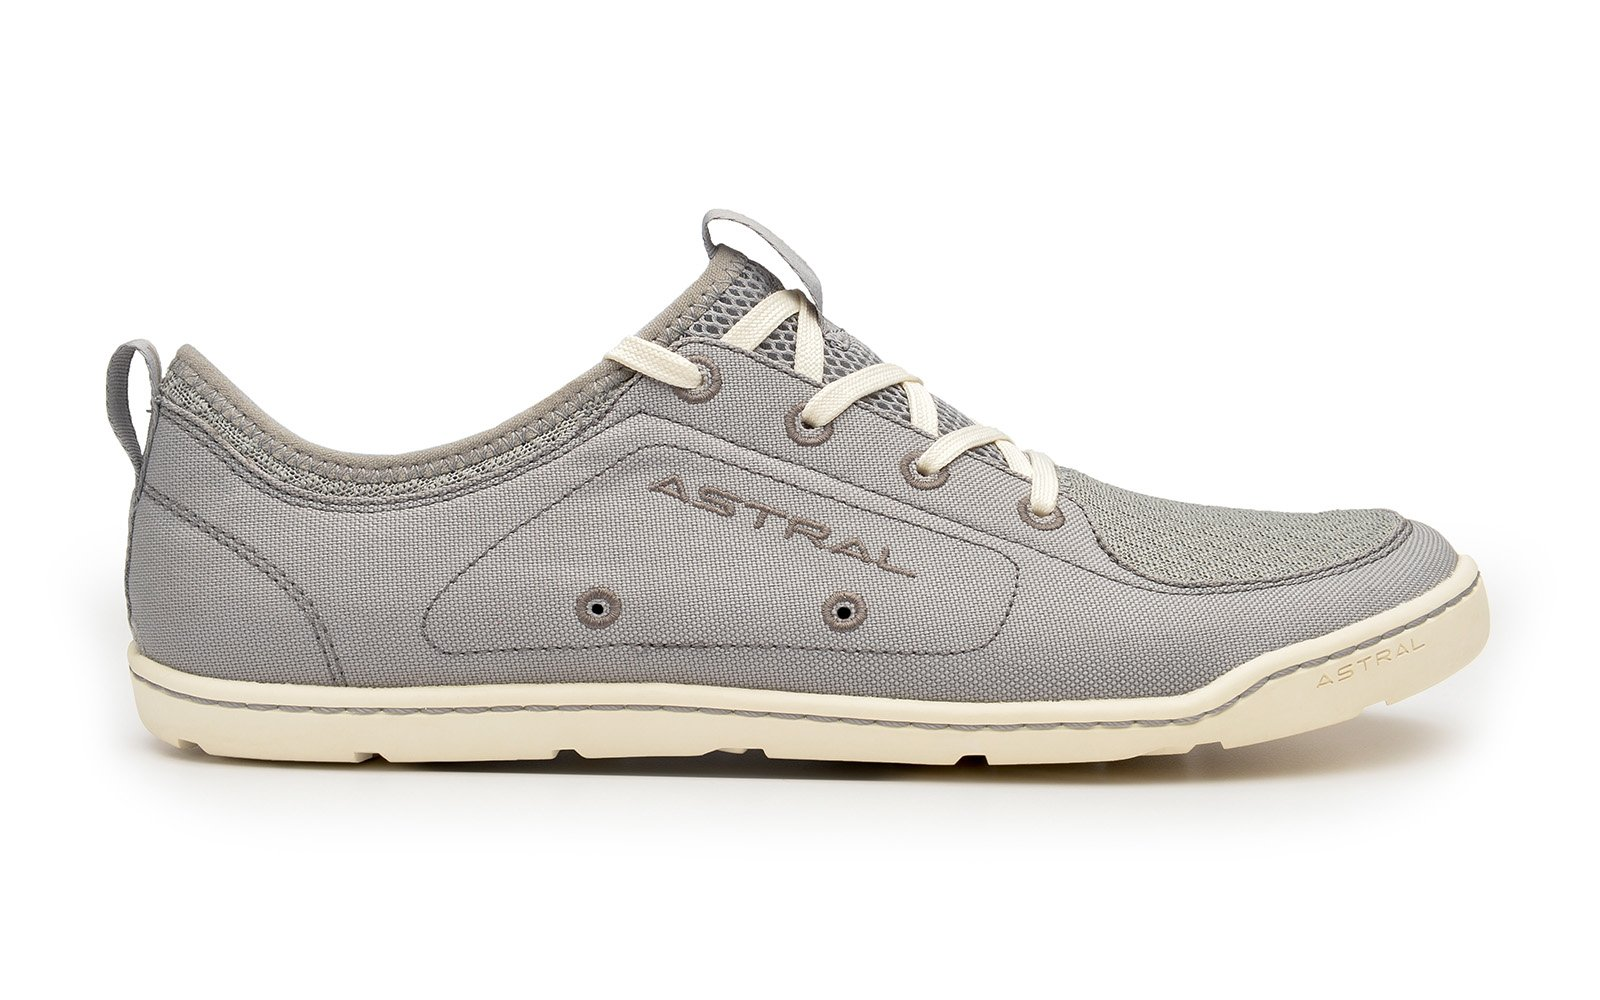 Astral Loyak Men's Water Shoes in Gray/White